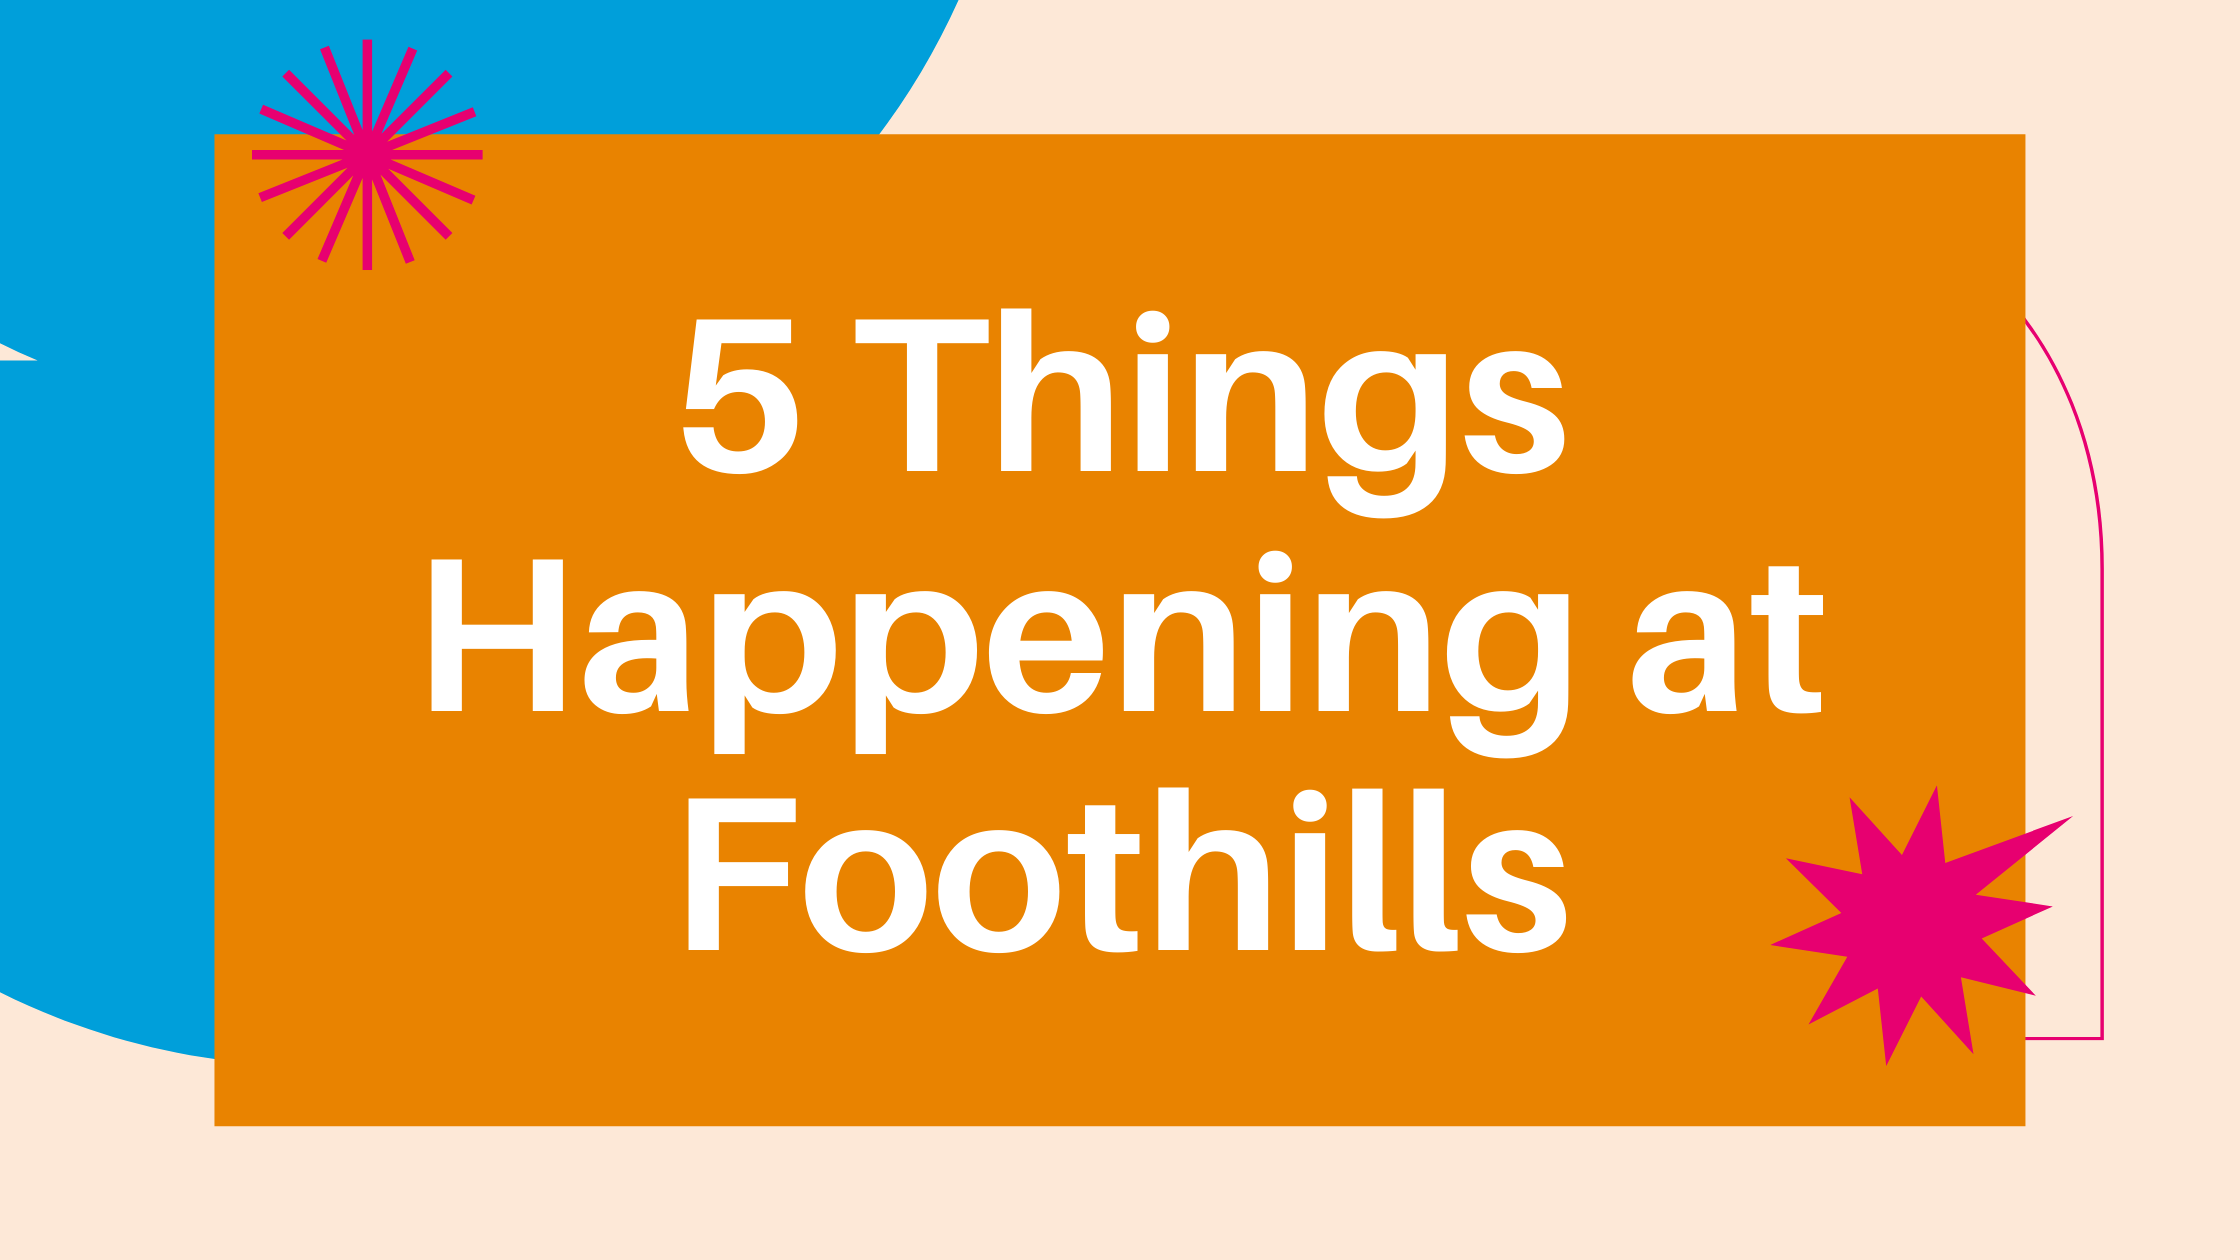 5 Things Happening at Foothills!